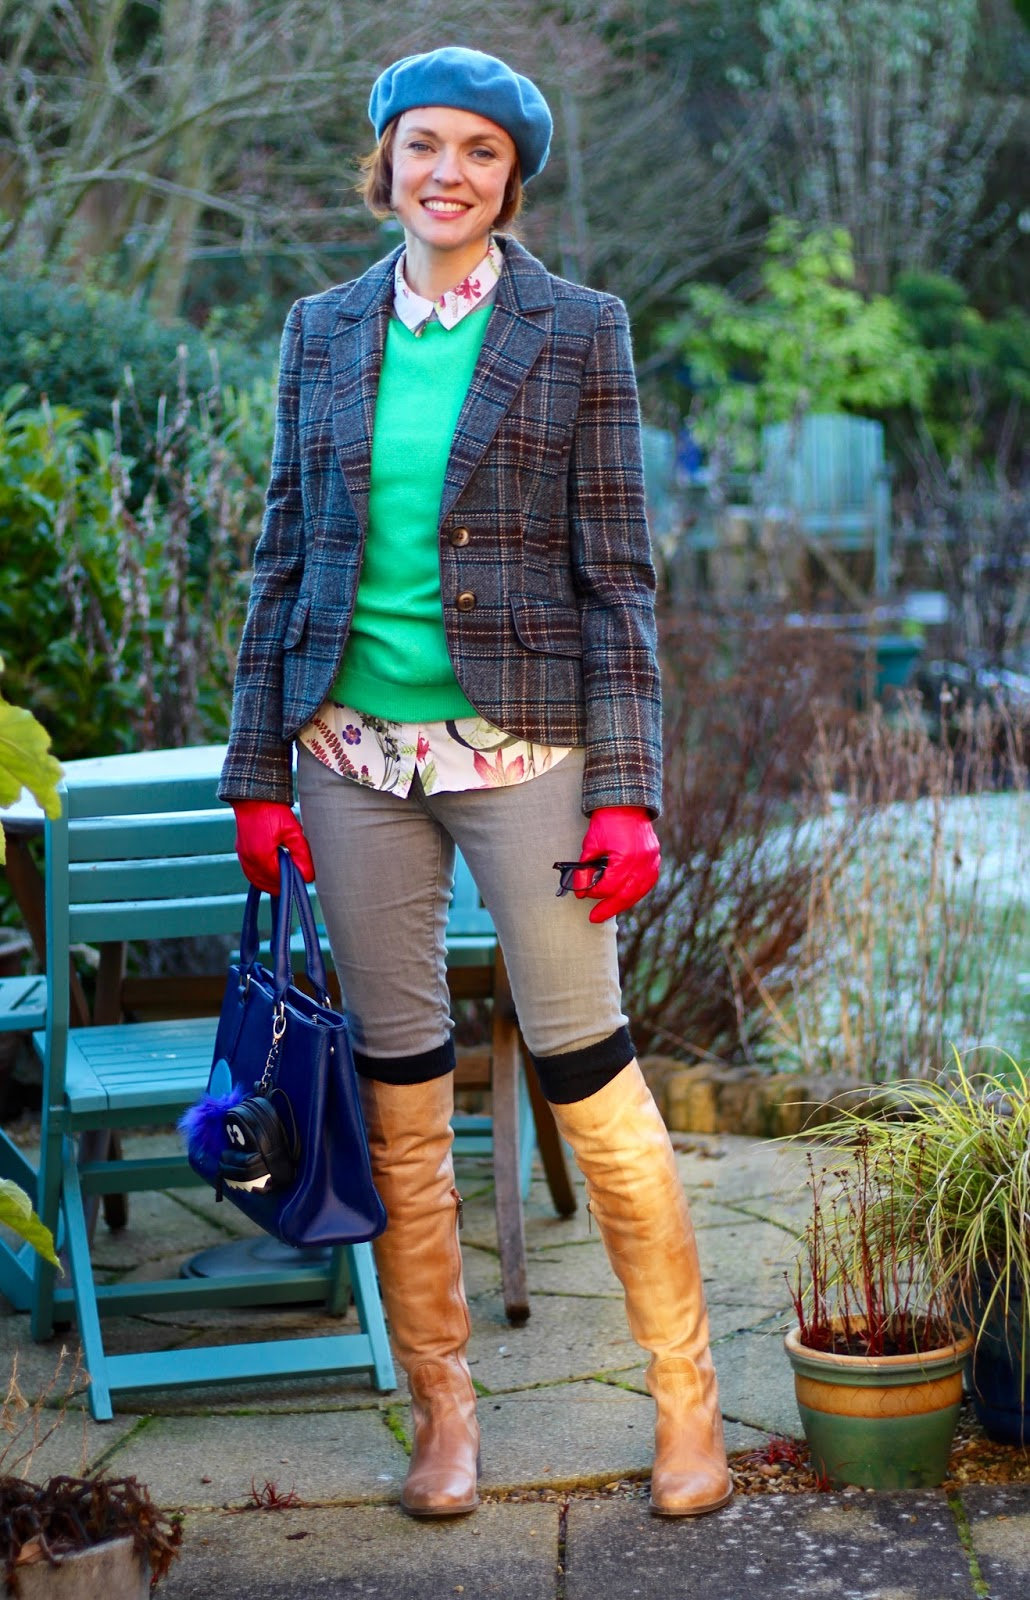 Geek Chic in Grey and Green | Tweed Jacket, Blue Eye Bag and OTK Boots | Fakefabulous